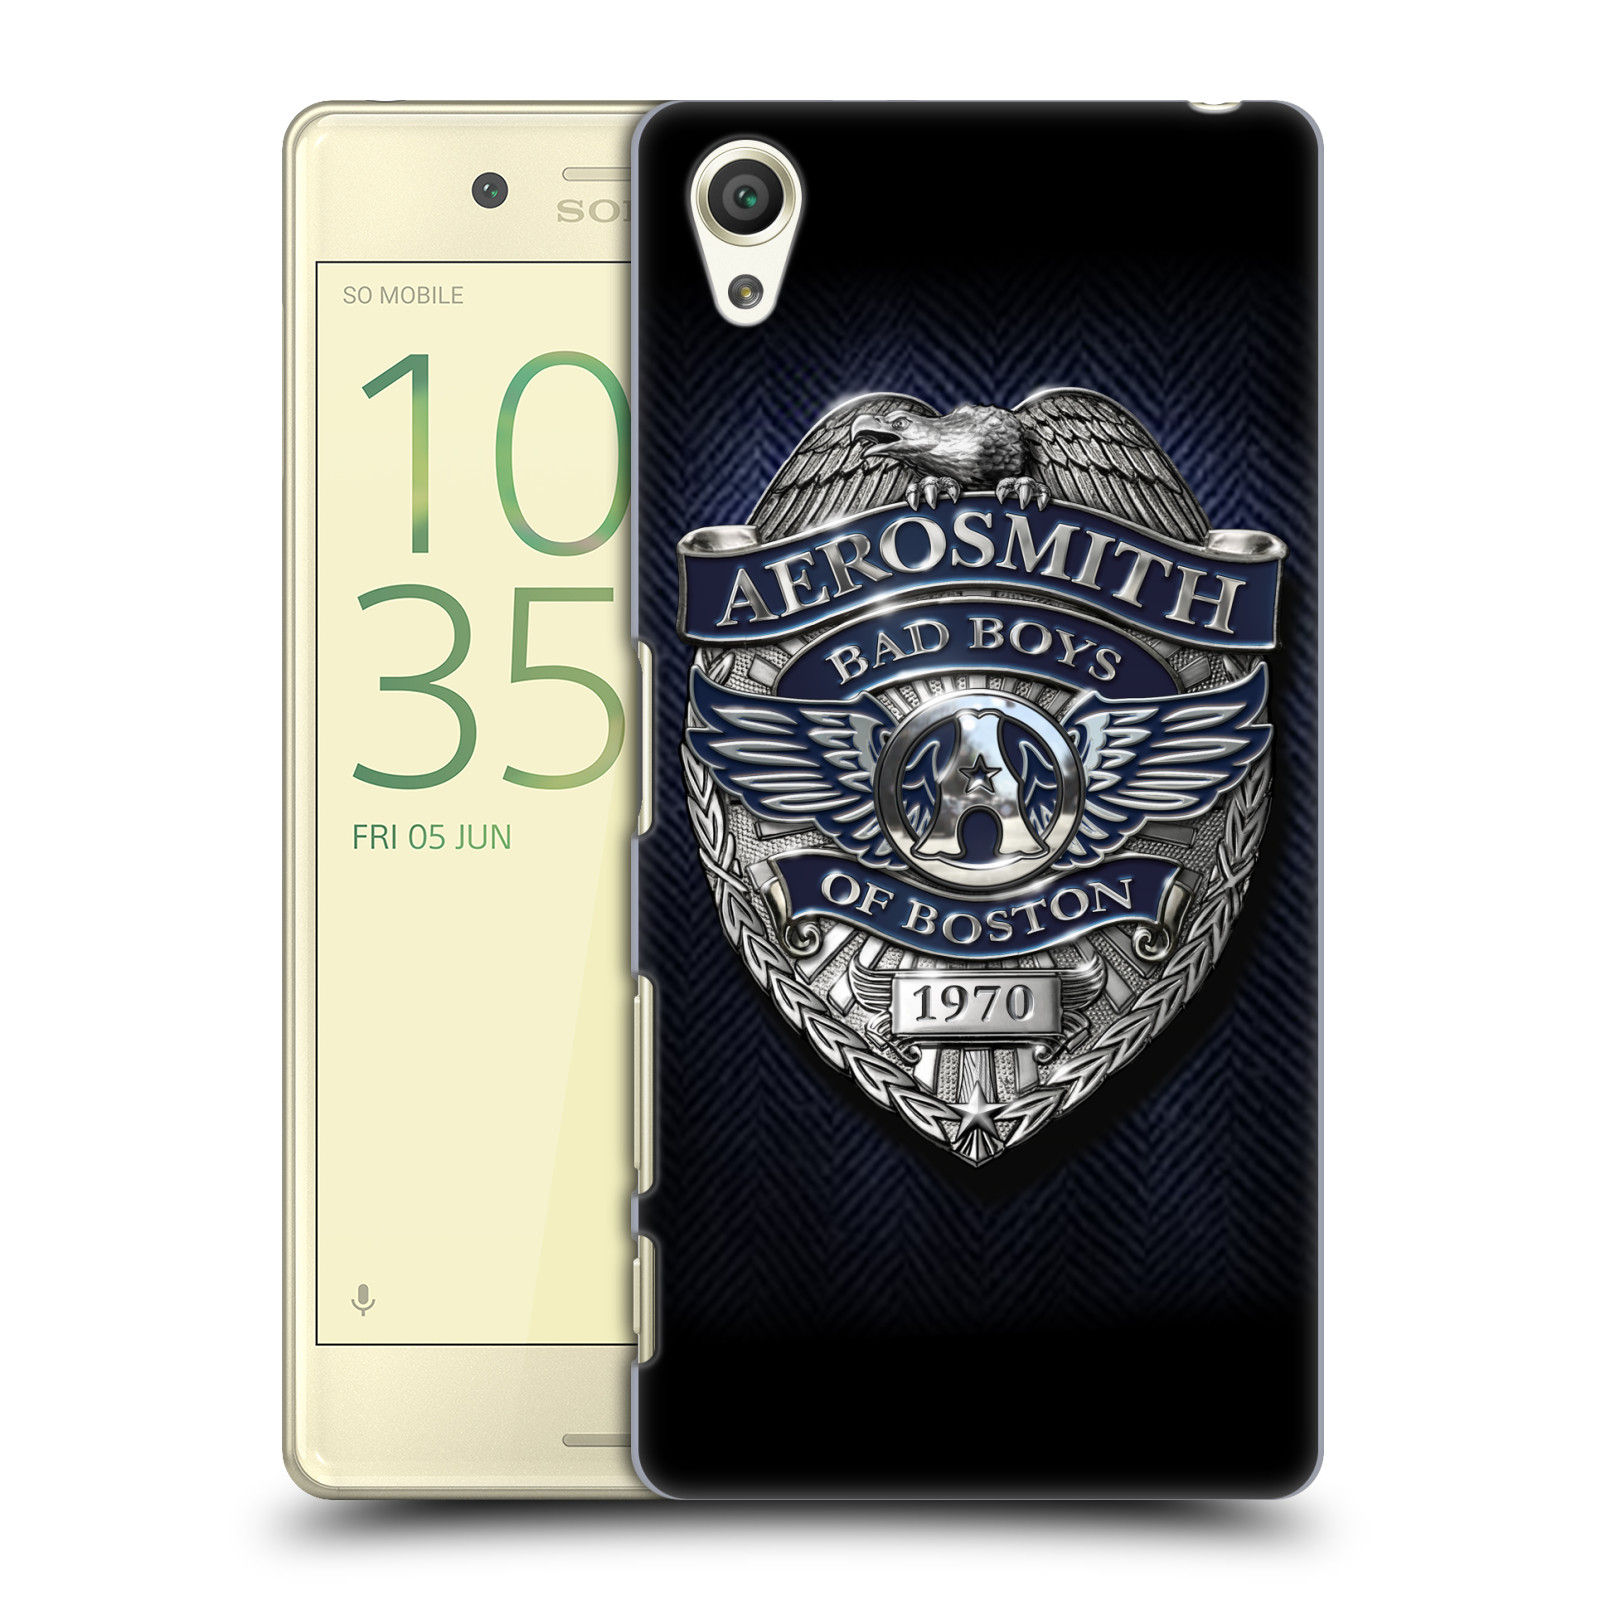 Plastové pouzdro na mobil Sony Xperia X HEAD CASE - Aerosmith - Bad Boys of Boston